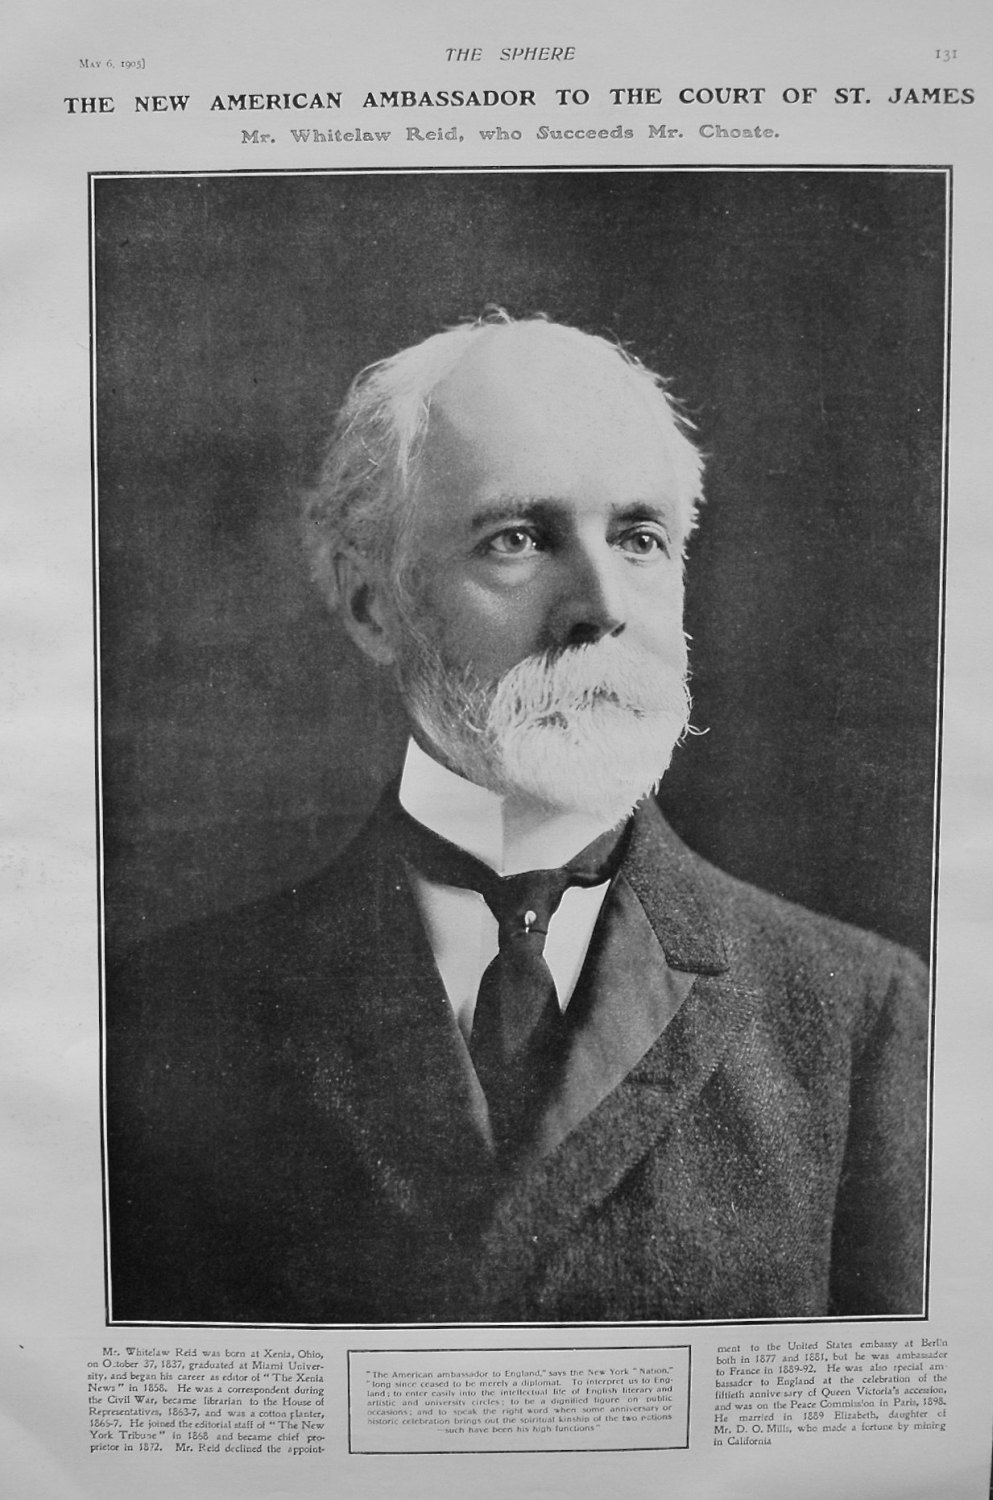 The New American Ambassador to the Court of St. James. Mr. Whitelaw Reid, w